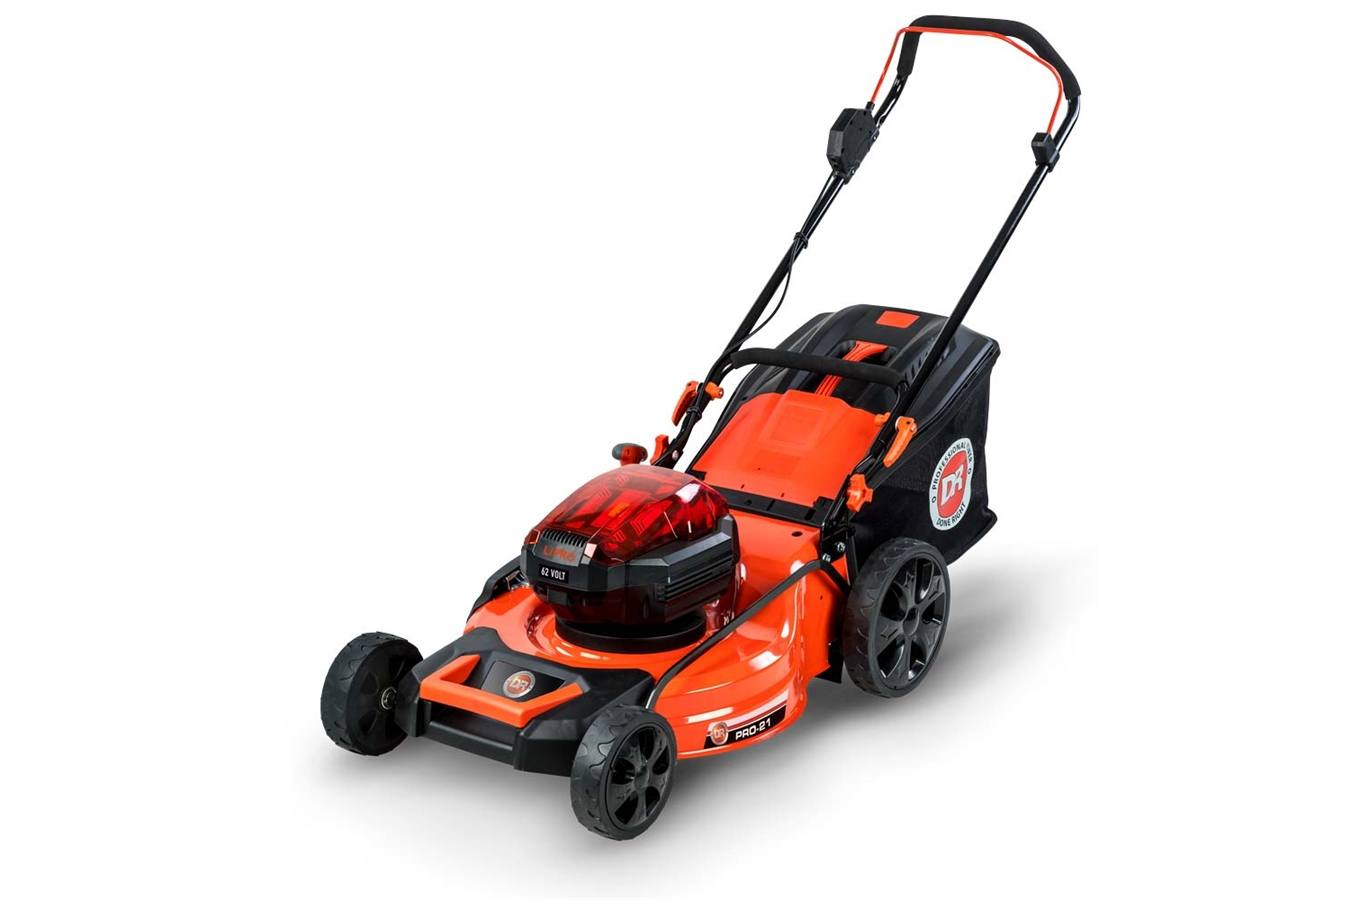 424130 DR 62V Battery-Powered Lawn Mower w/2 Batteries